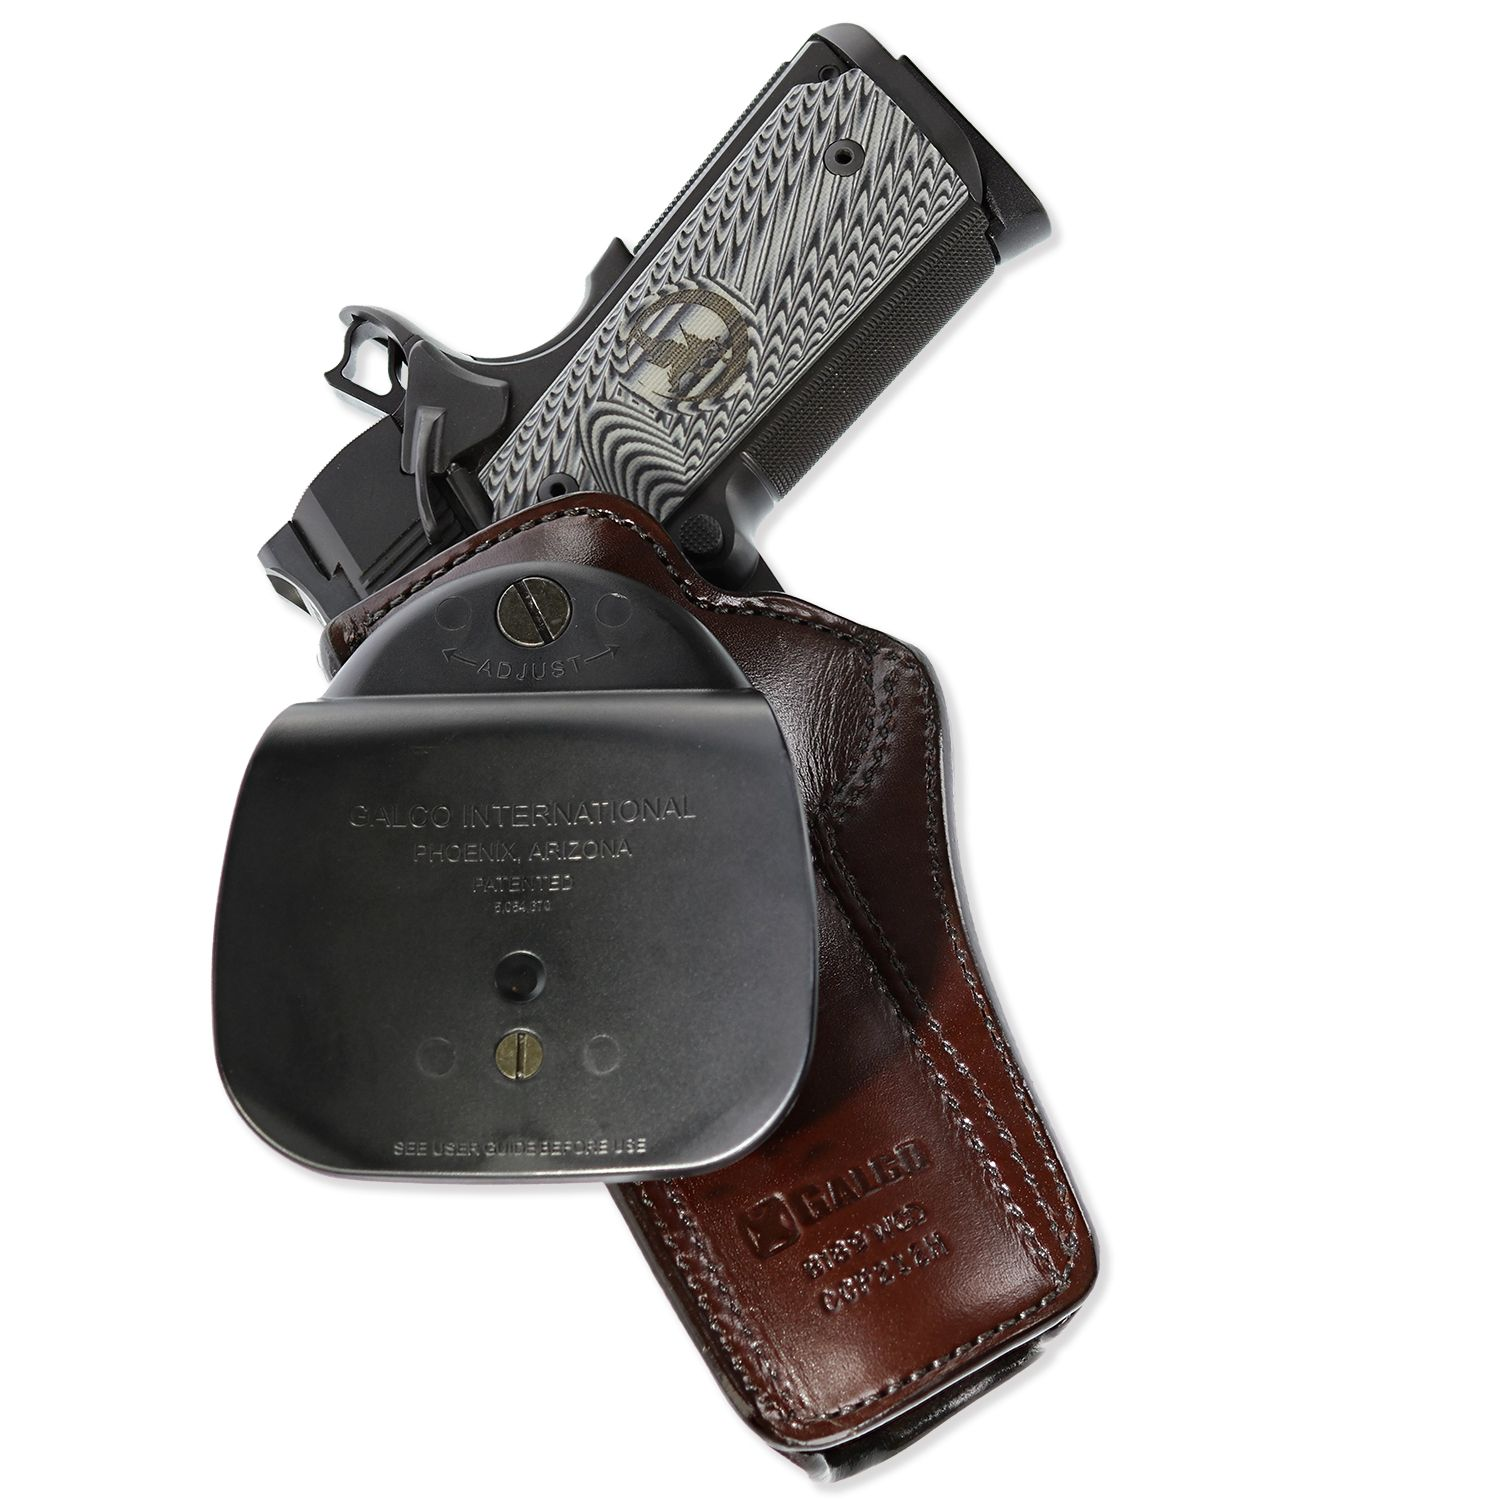 CCP CONCEALED CARRY PADDLE: Galco's CCP™ (Concealed Carry